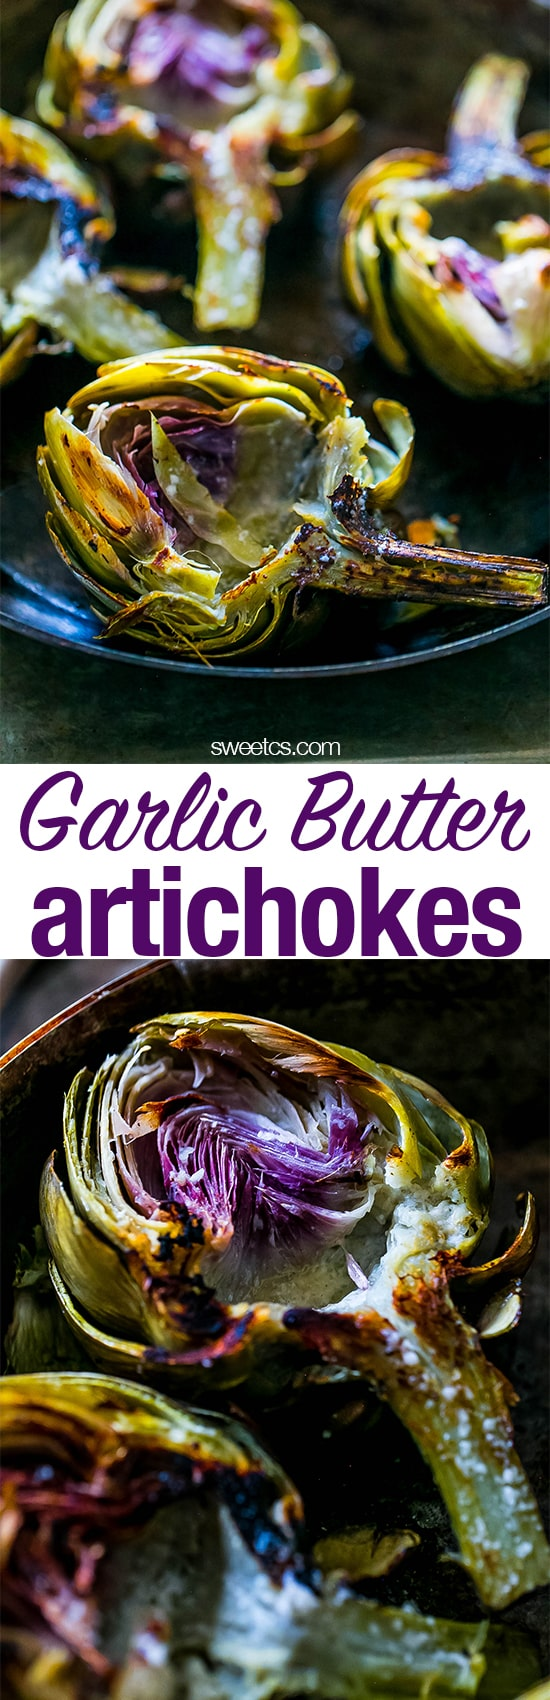 These garlic butter artichokes are the best ever!